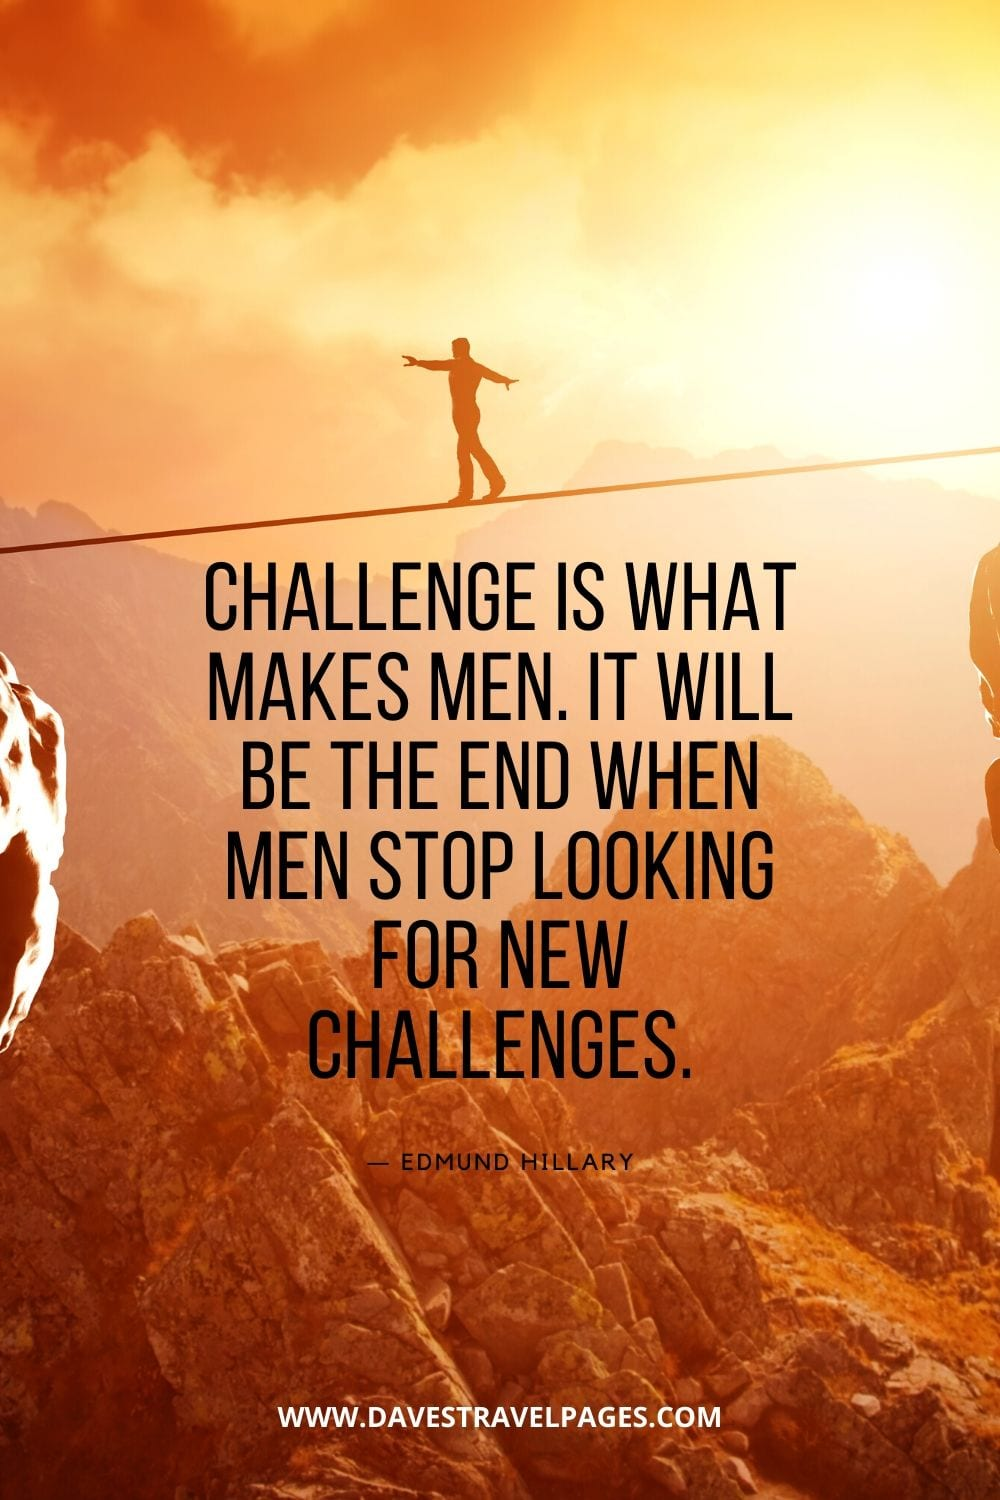 """Challenge is what makes men. It will be the end when men stop looking for new challenges."" - Motivational Quote by Edmund Hillary"